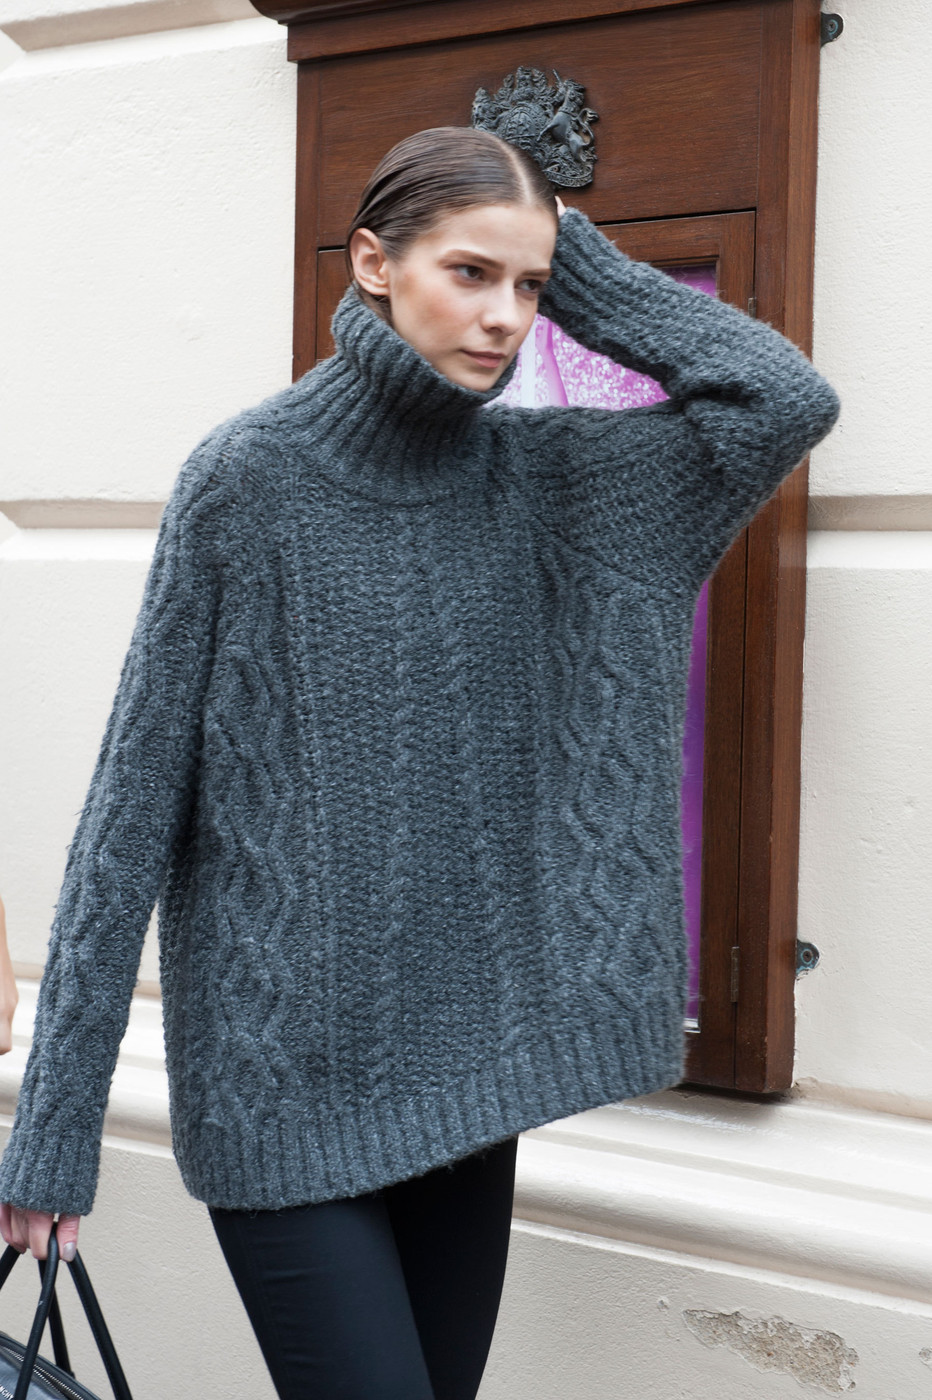 Cozy Coolness Best Street Style At London Fashion Week Spring 2015 Livingly